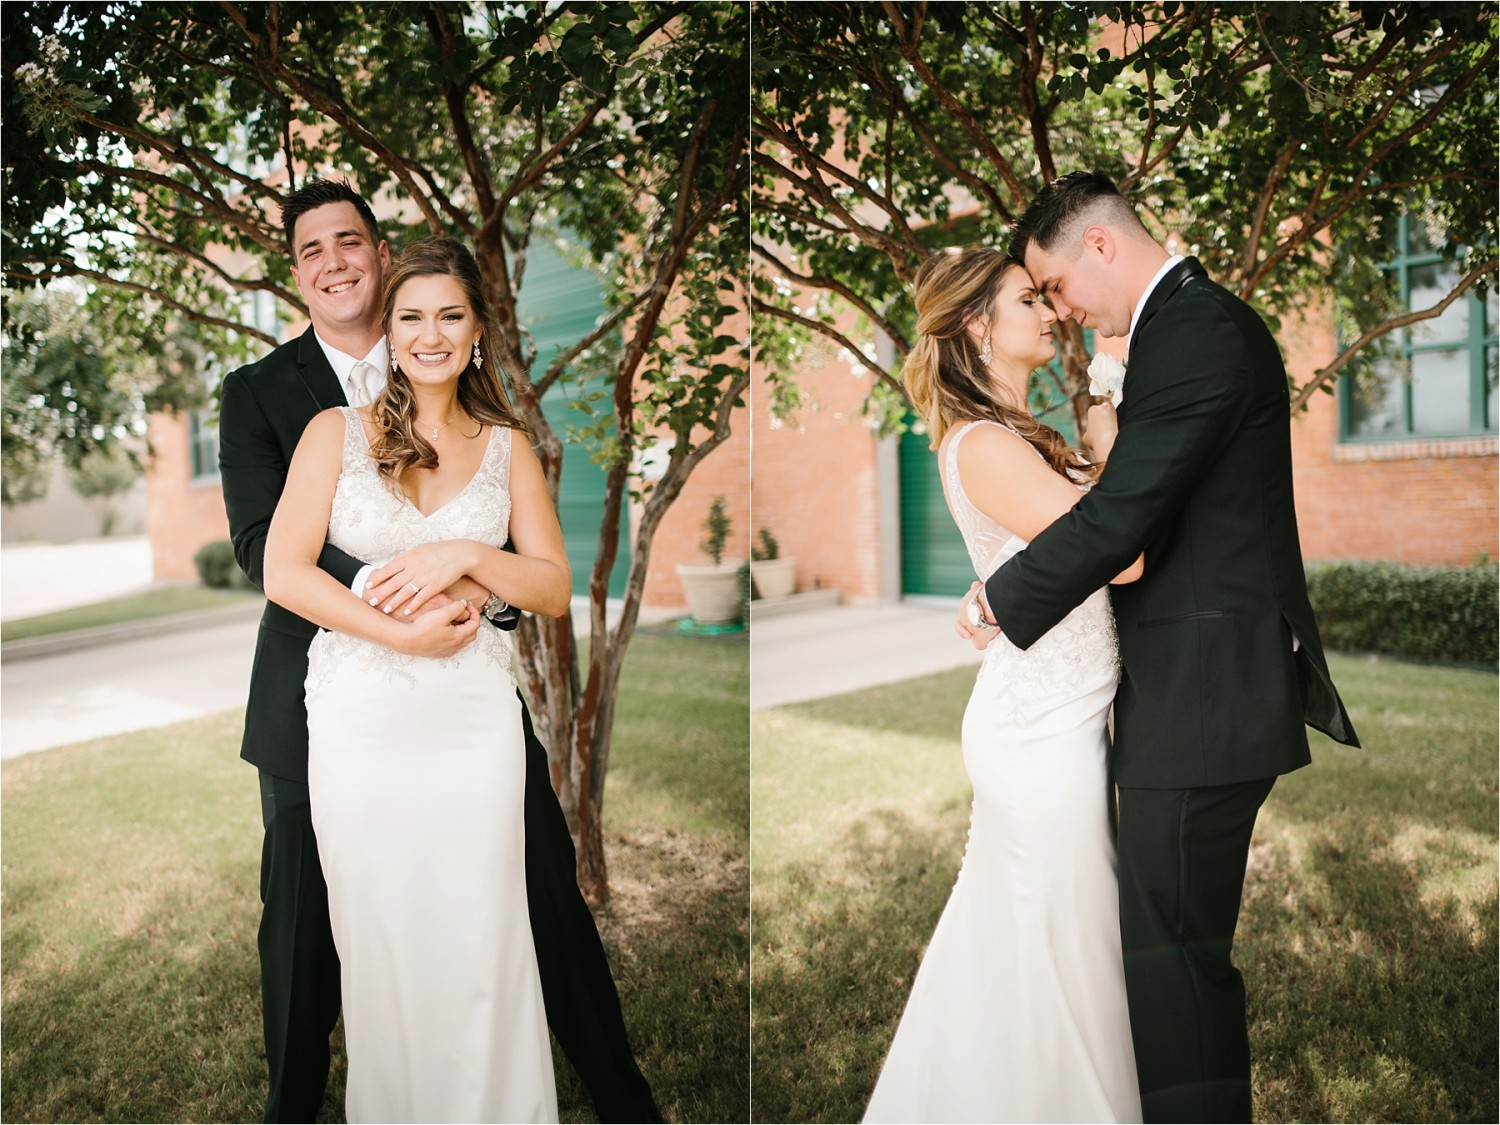 Holly + Jordan __ a black, gold, and greenery organic wedding at The Phoenix Ballroom in Waco, TX by North Texas Wedding Photographer Rachel Meagan Photography __ 41